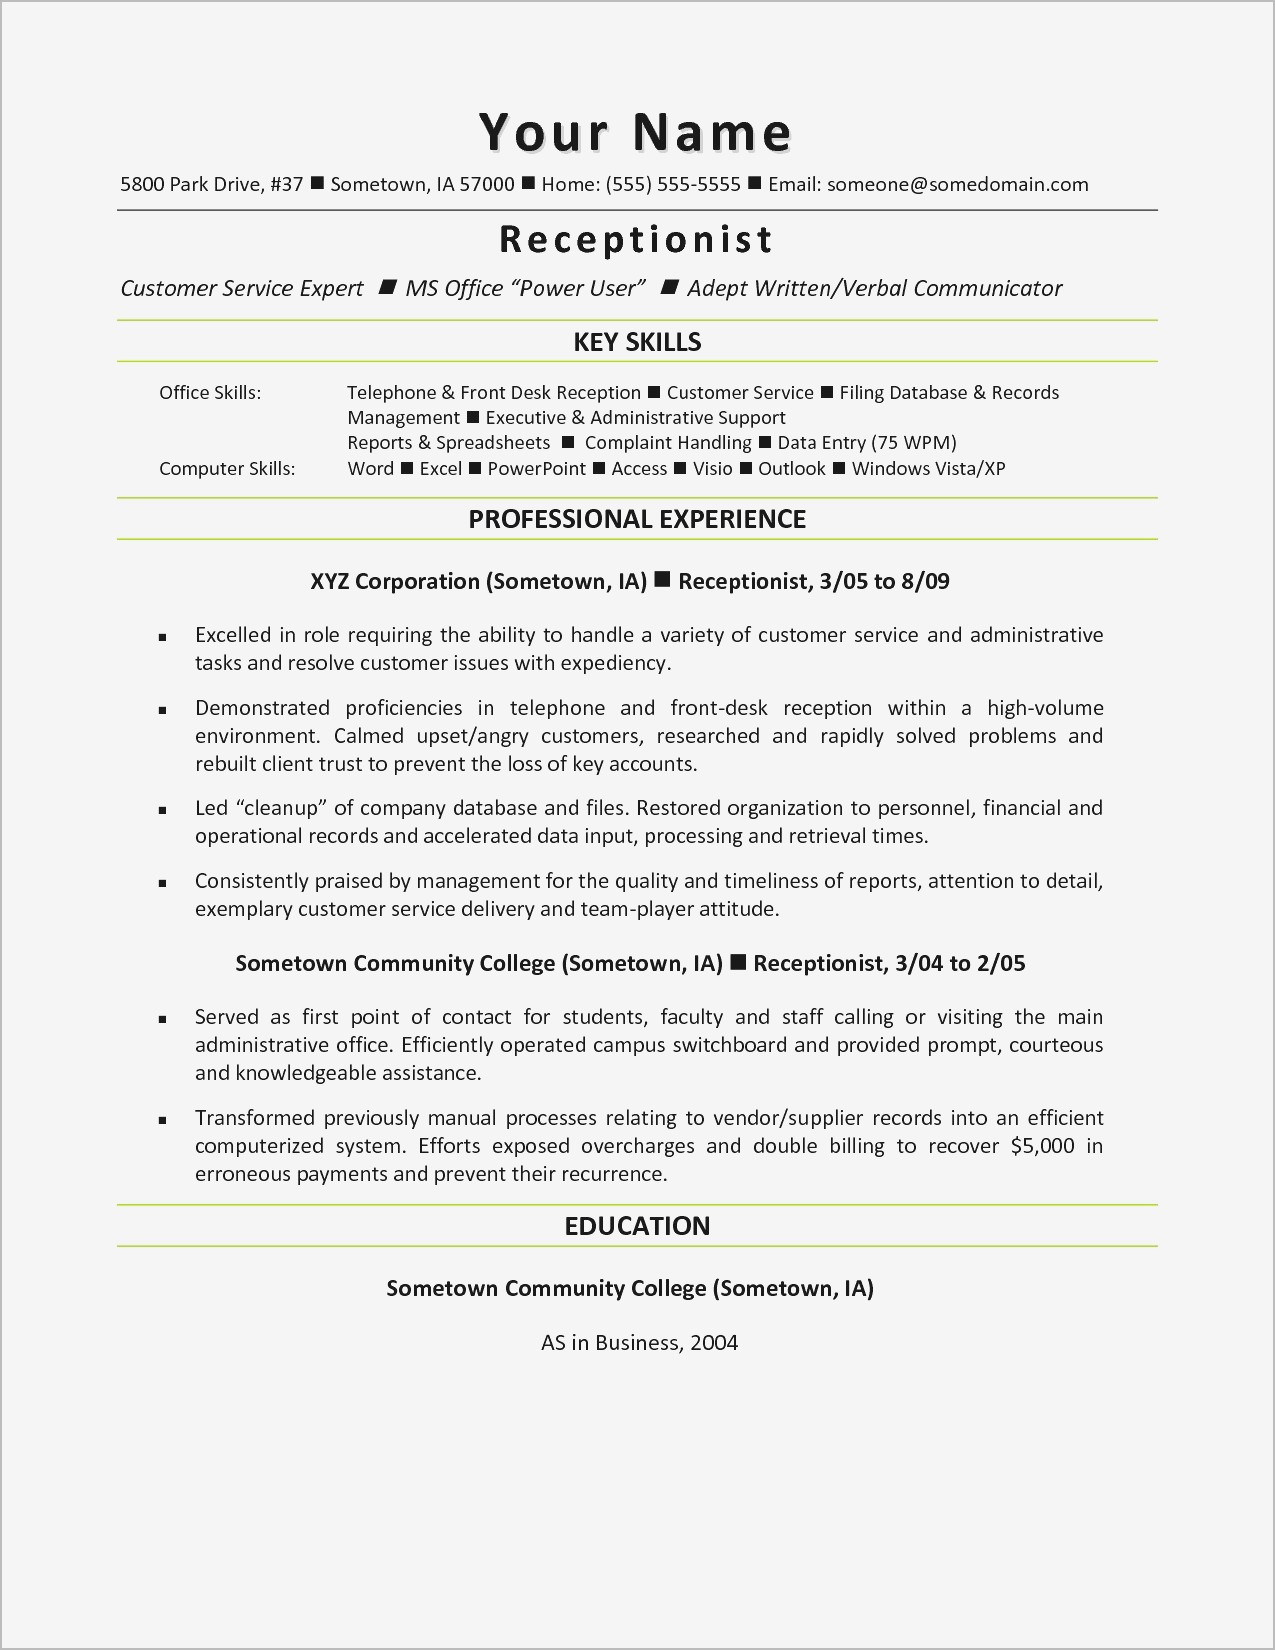 Cover Letter Template for Receptionist - Customer Service Cover Letter Examples Samples